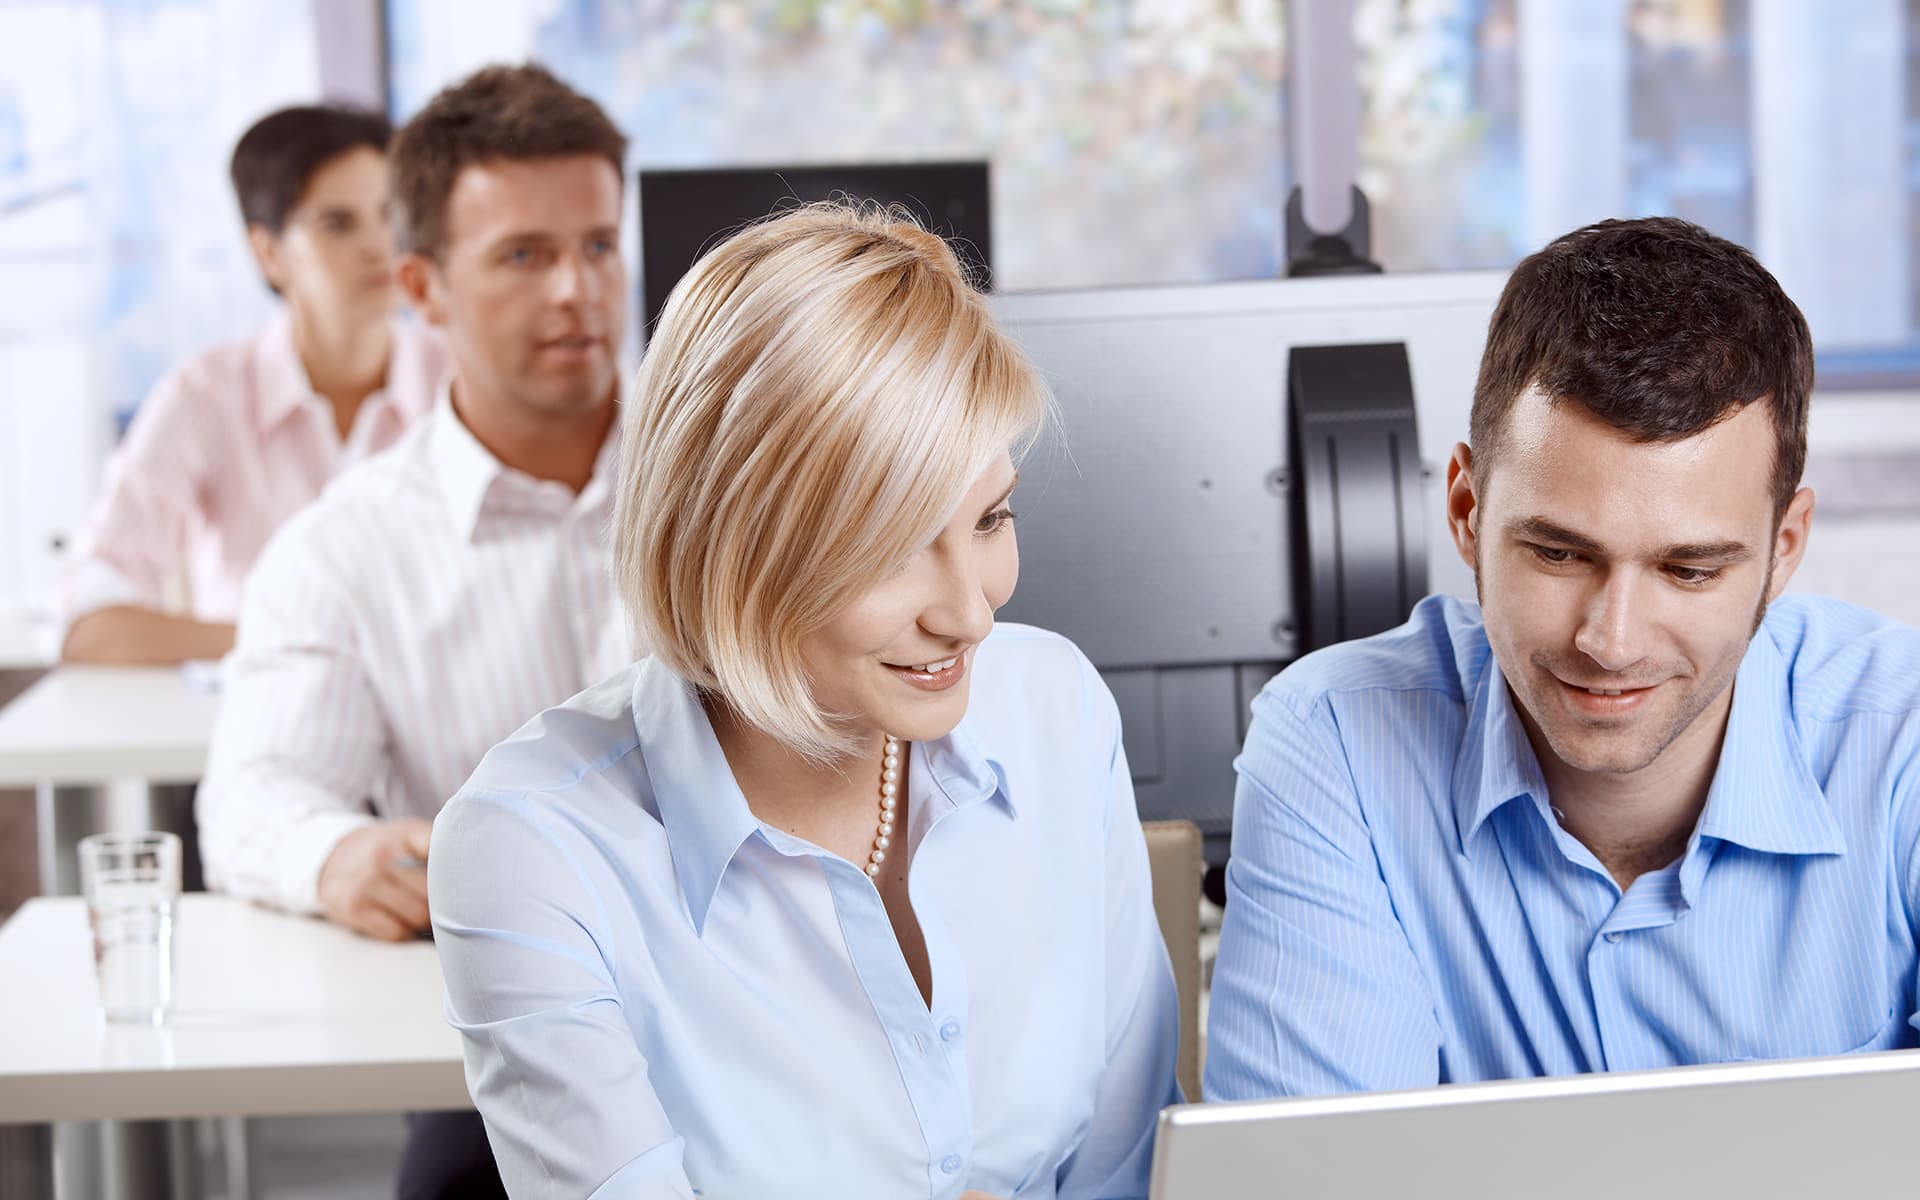 How to automate your training course workflow - 2 employees sitting iin front of a computer